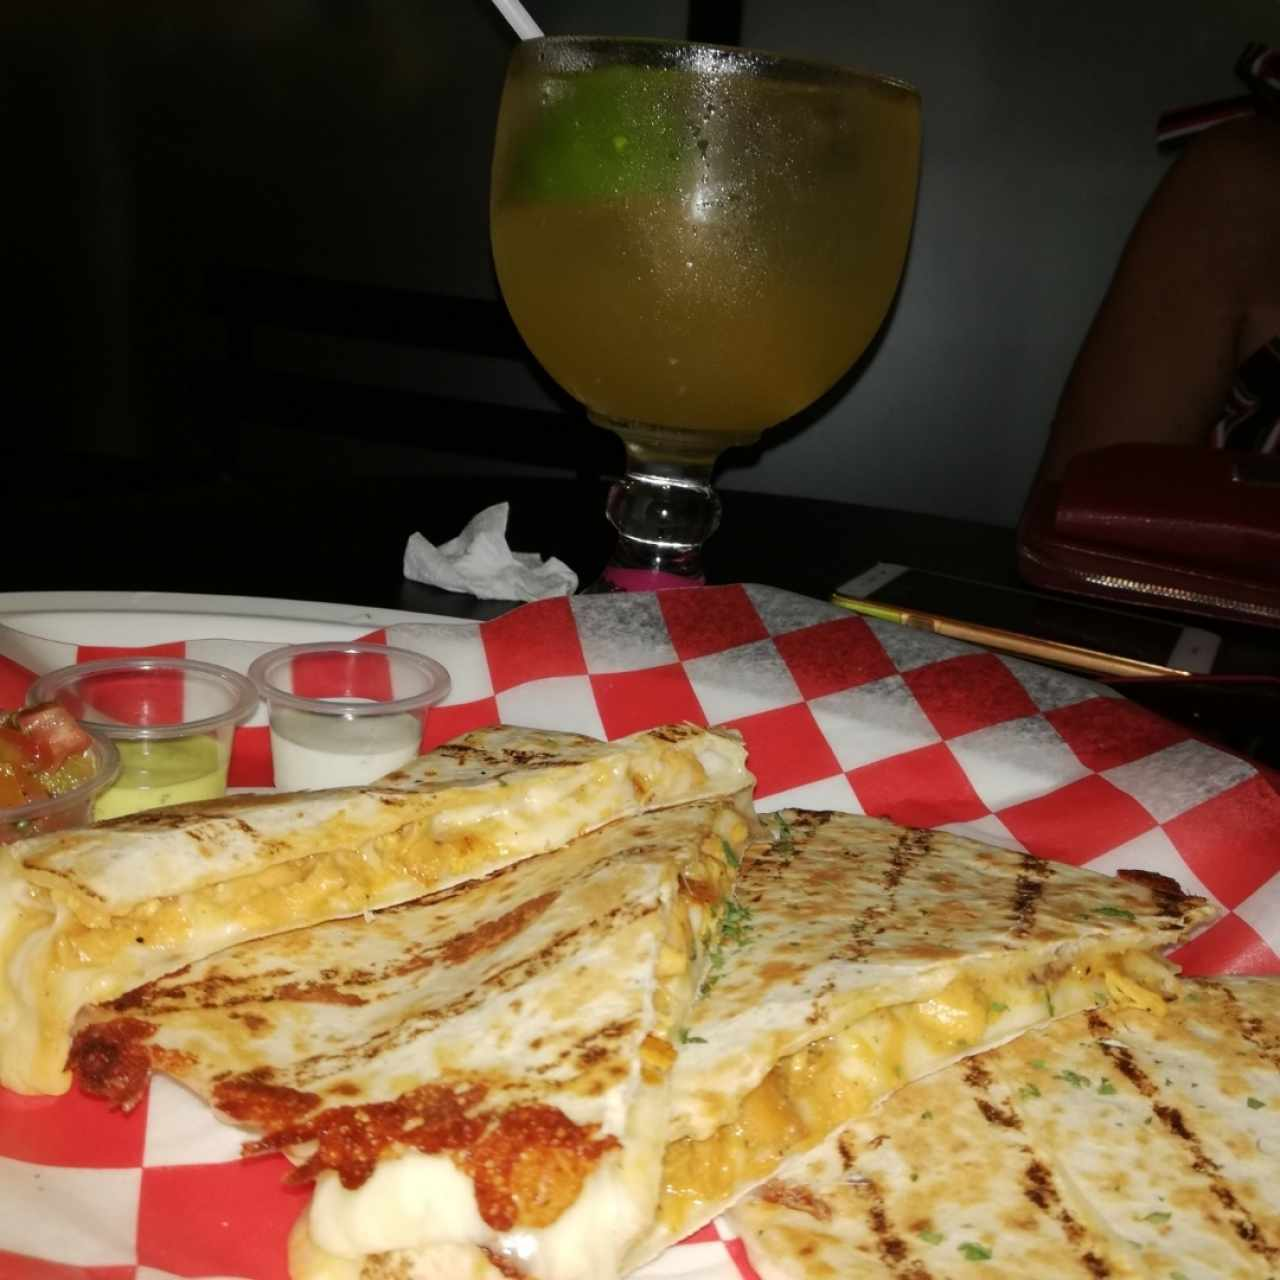 quesadillas y limonada